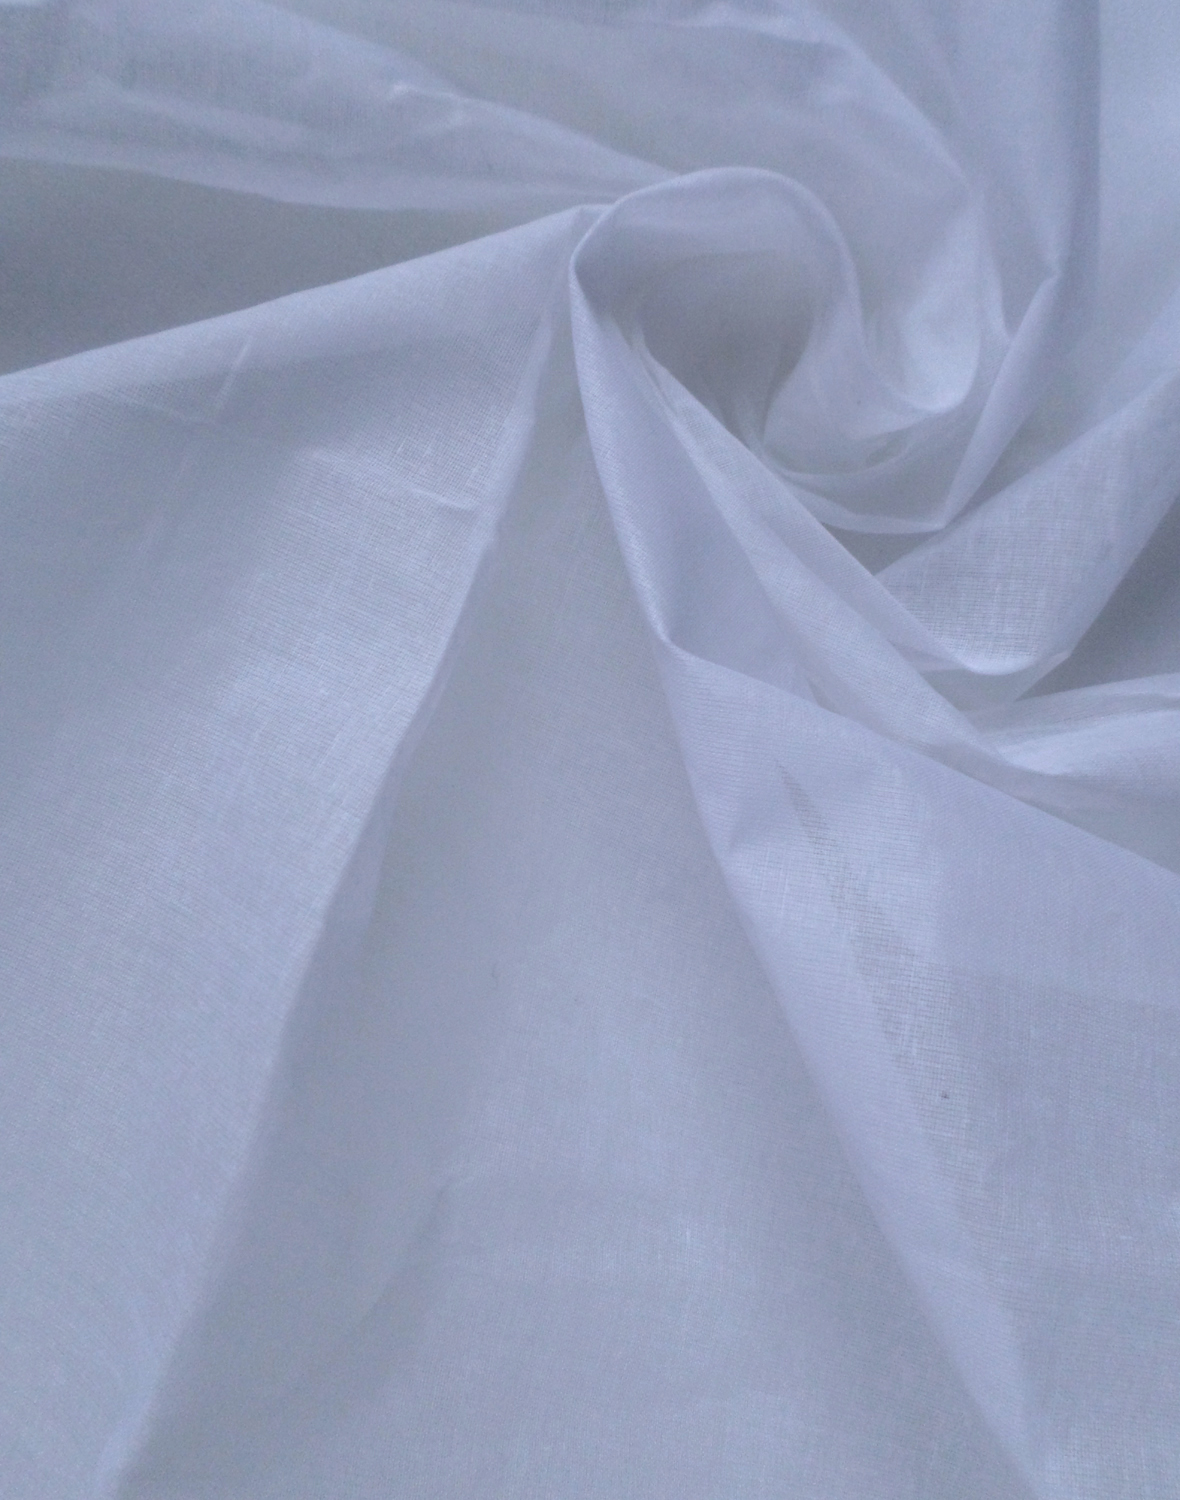 Cotton Organdy Sheer Wholesale Bridal Fabric